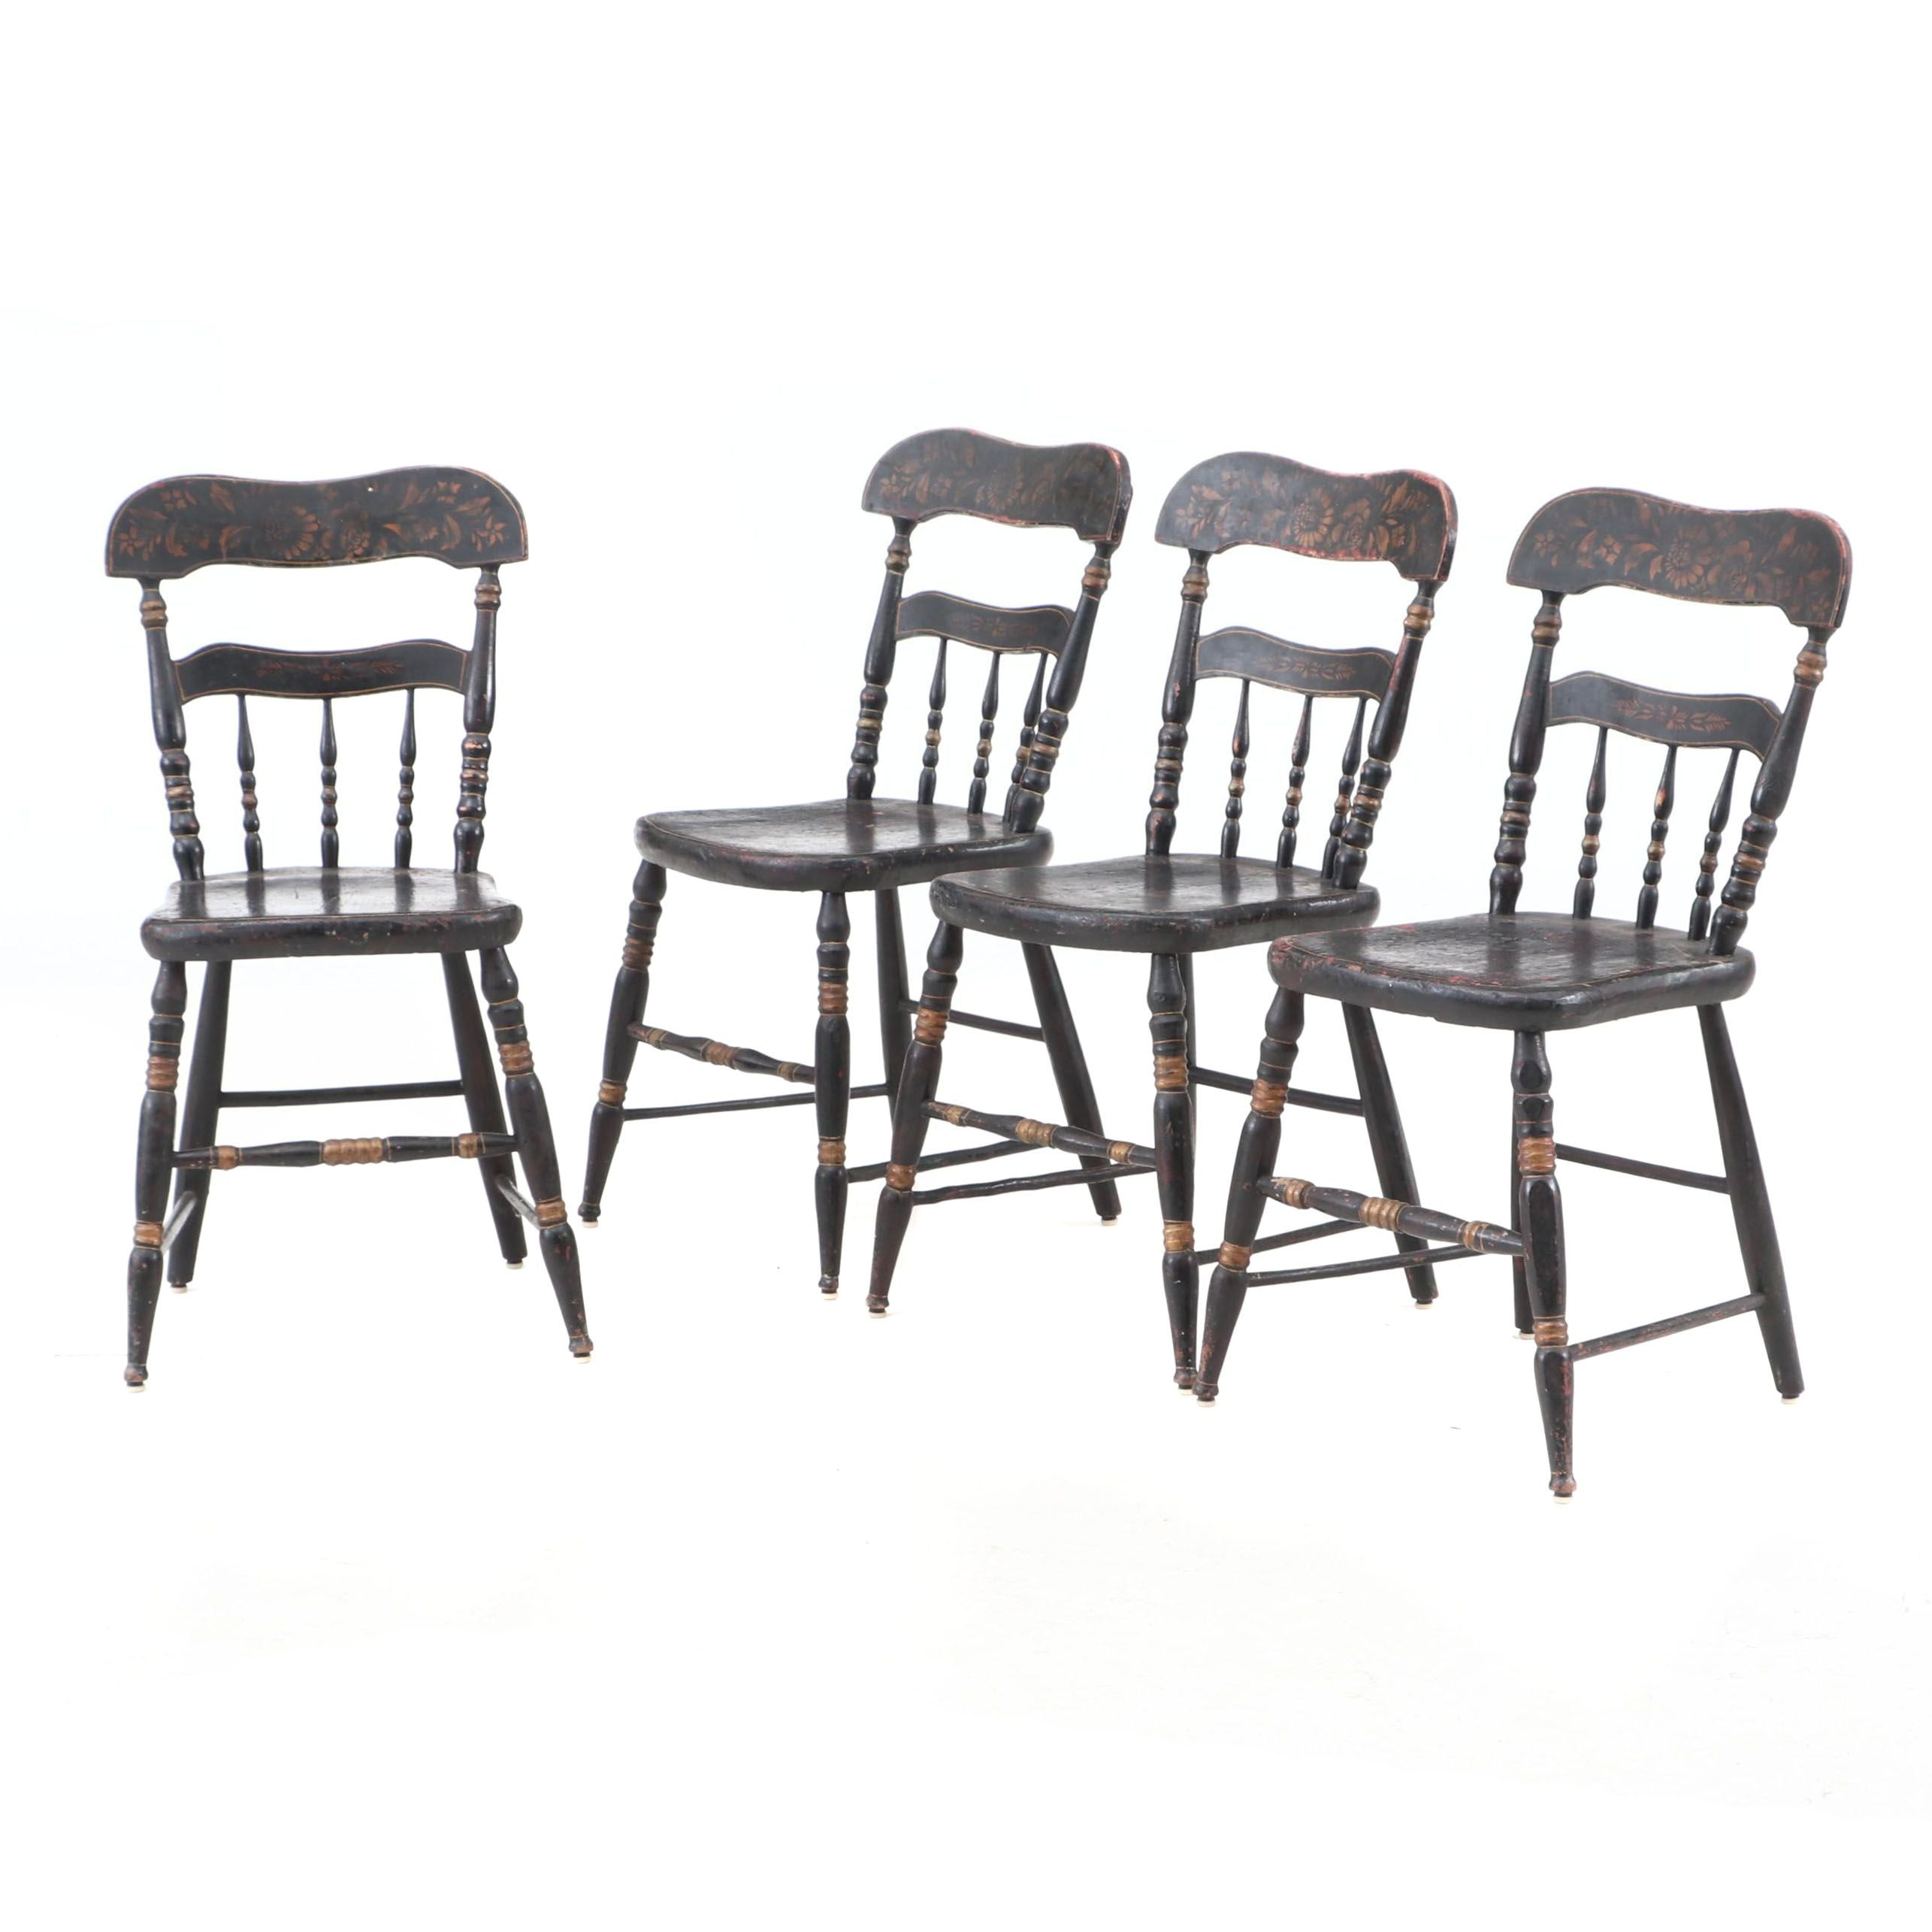 Four Stenciled American Chairs, Circa 1830